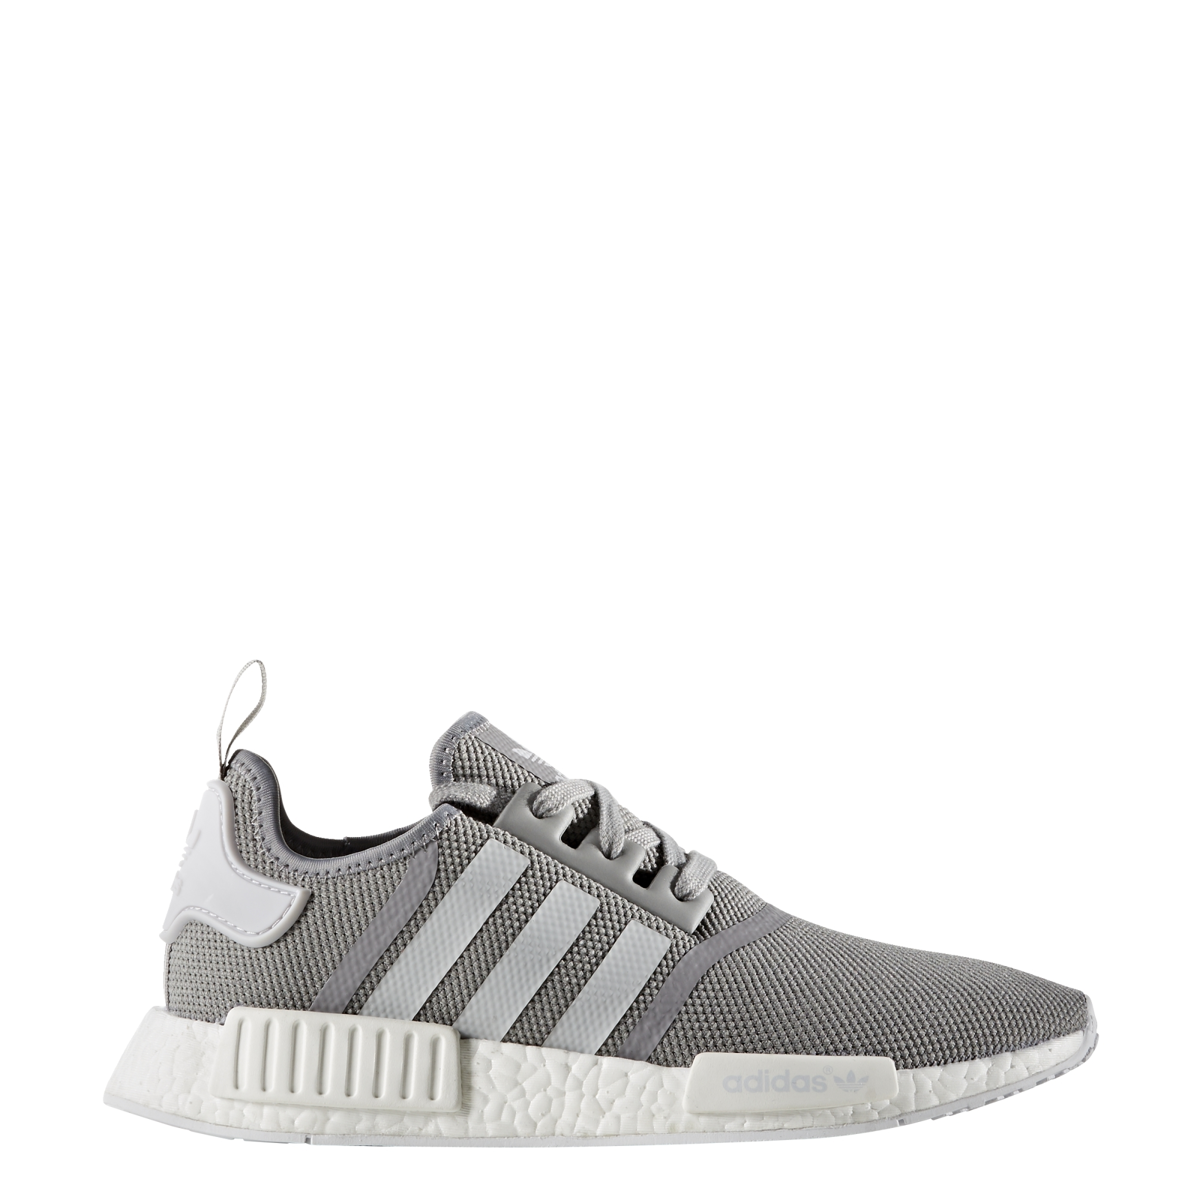 adidas nmd r1 solid grey shoes s31503 basketball. Black Bedroom Furniture Sets. Home Design Ideas